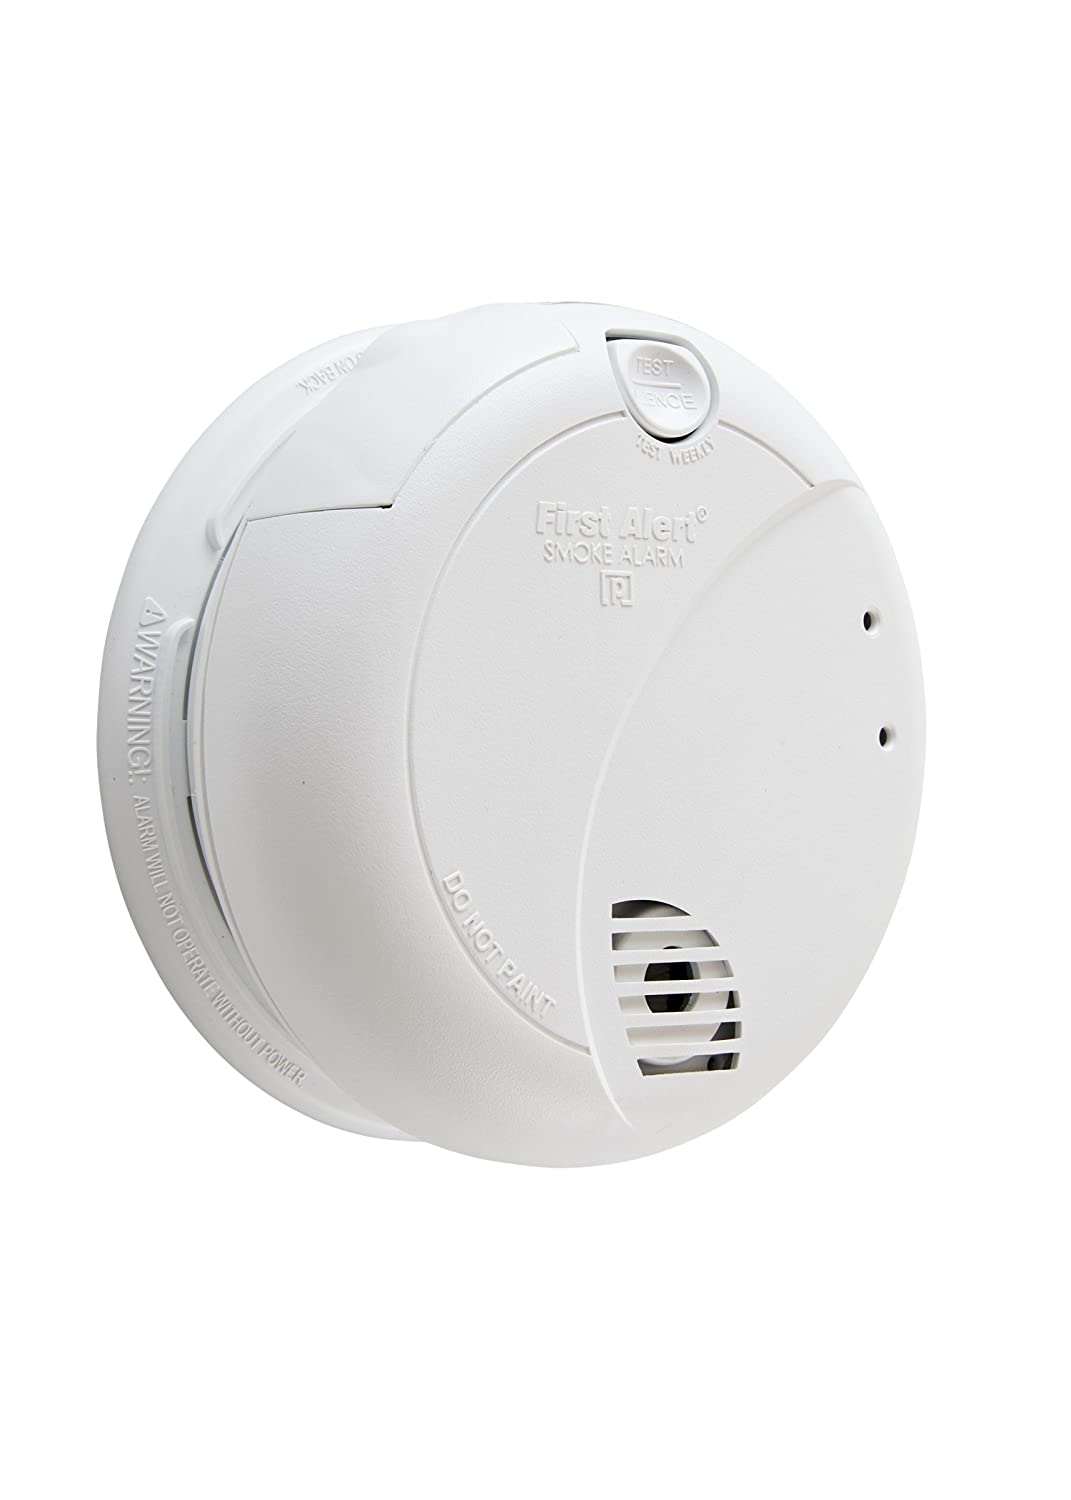 First Alert Brk 7010b Hardwire Smoke Alarm With Photoelectric Sensor Hard Wired Wiring Diagram Free Download And Battery Backup Detectors